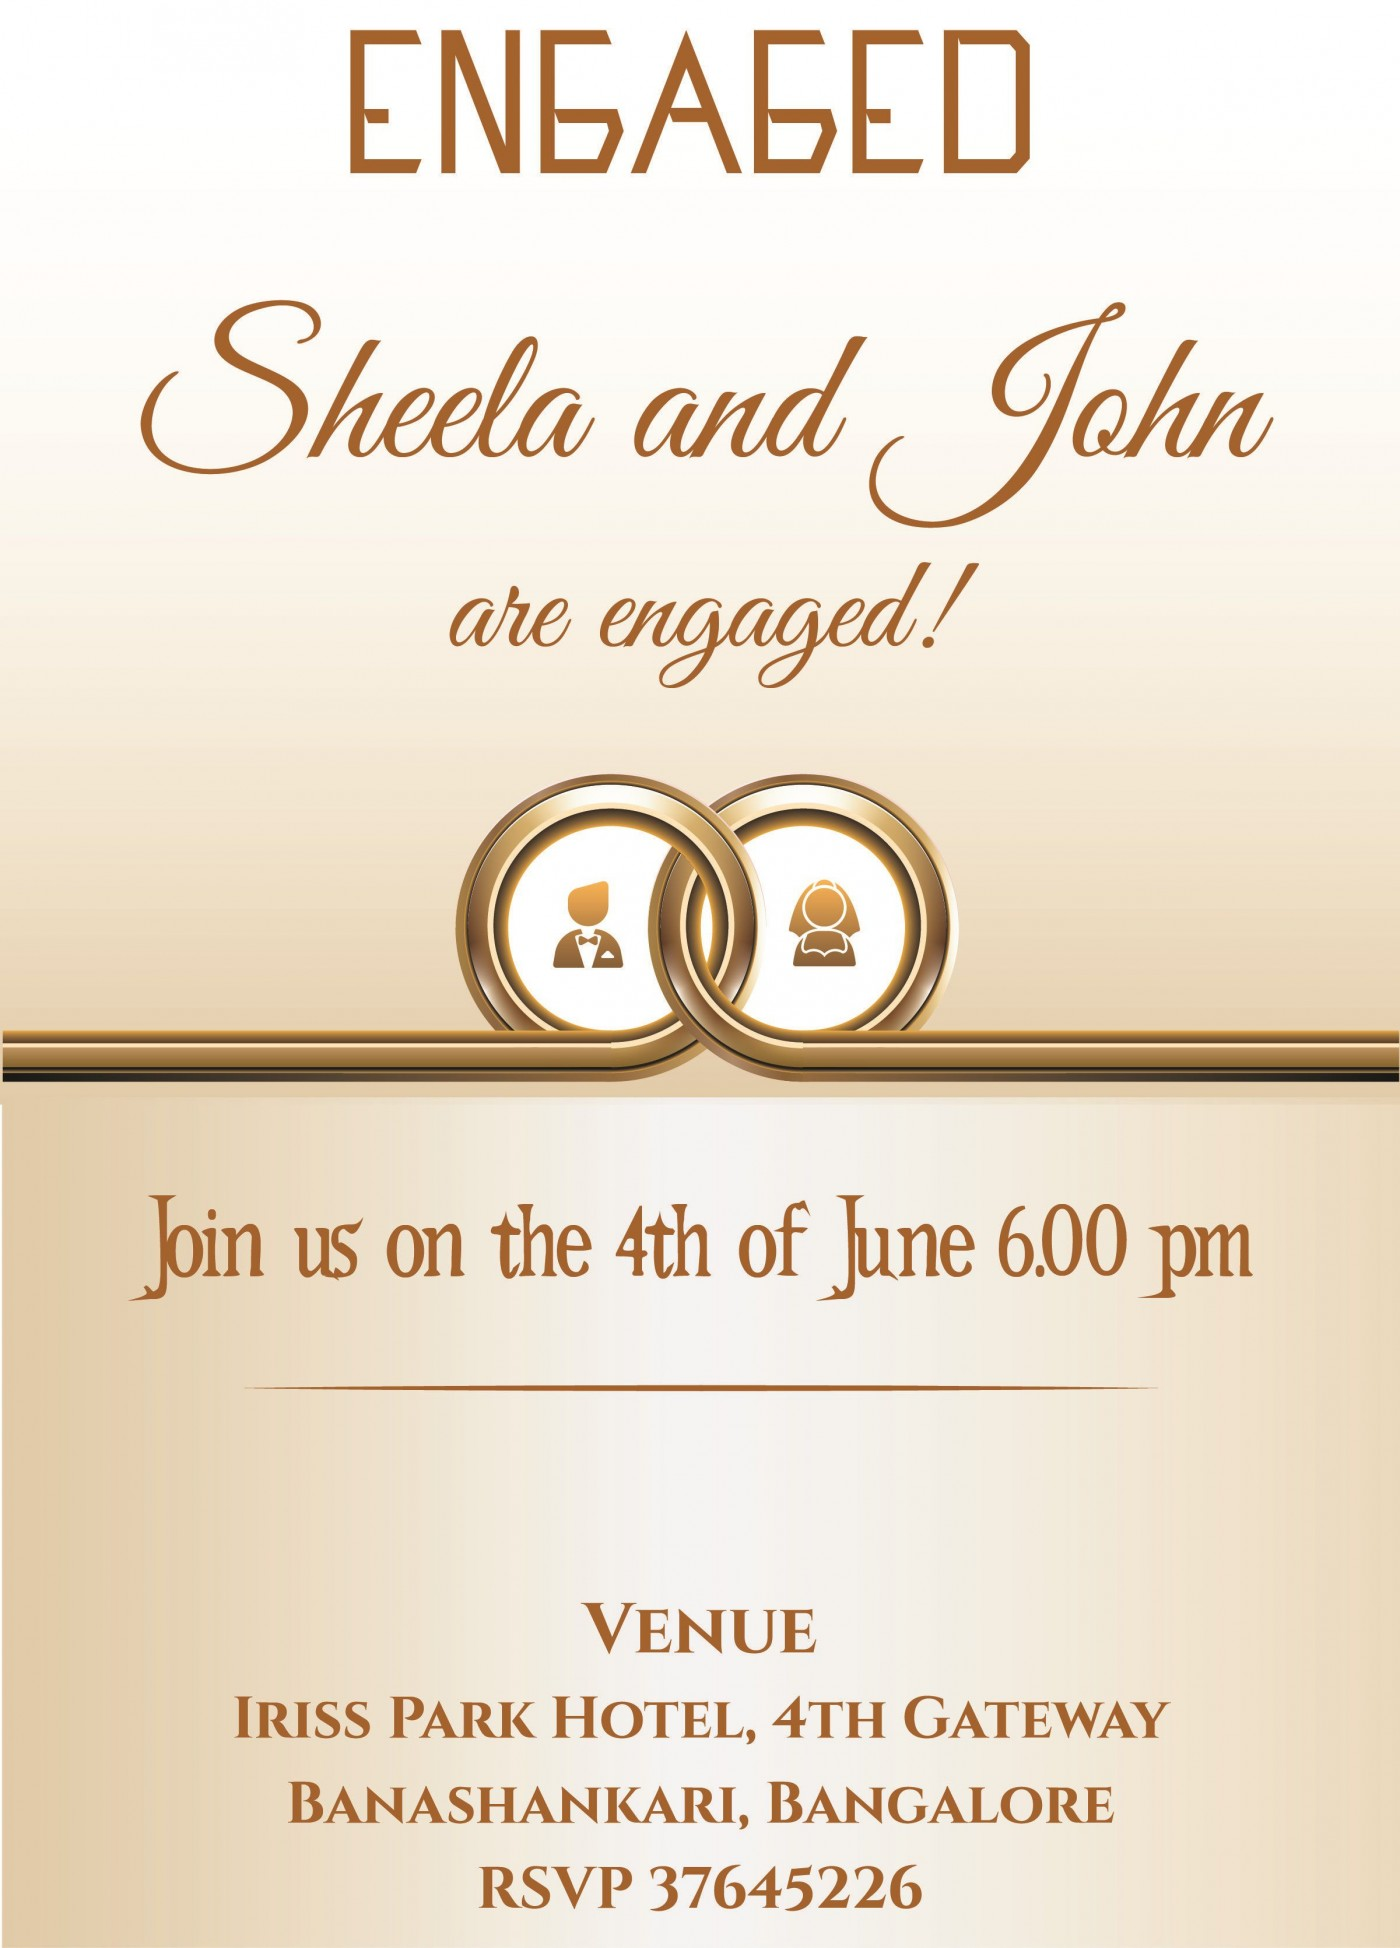 002 Breathtaking Free Engagement Invitation Template Online With Photo Highest Clarity 1400